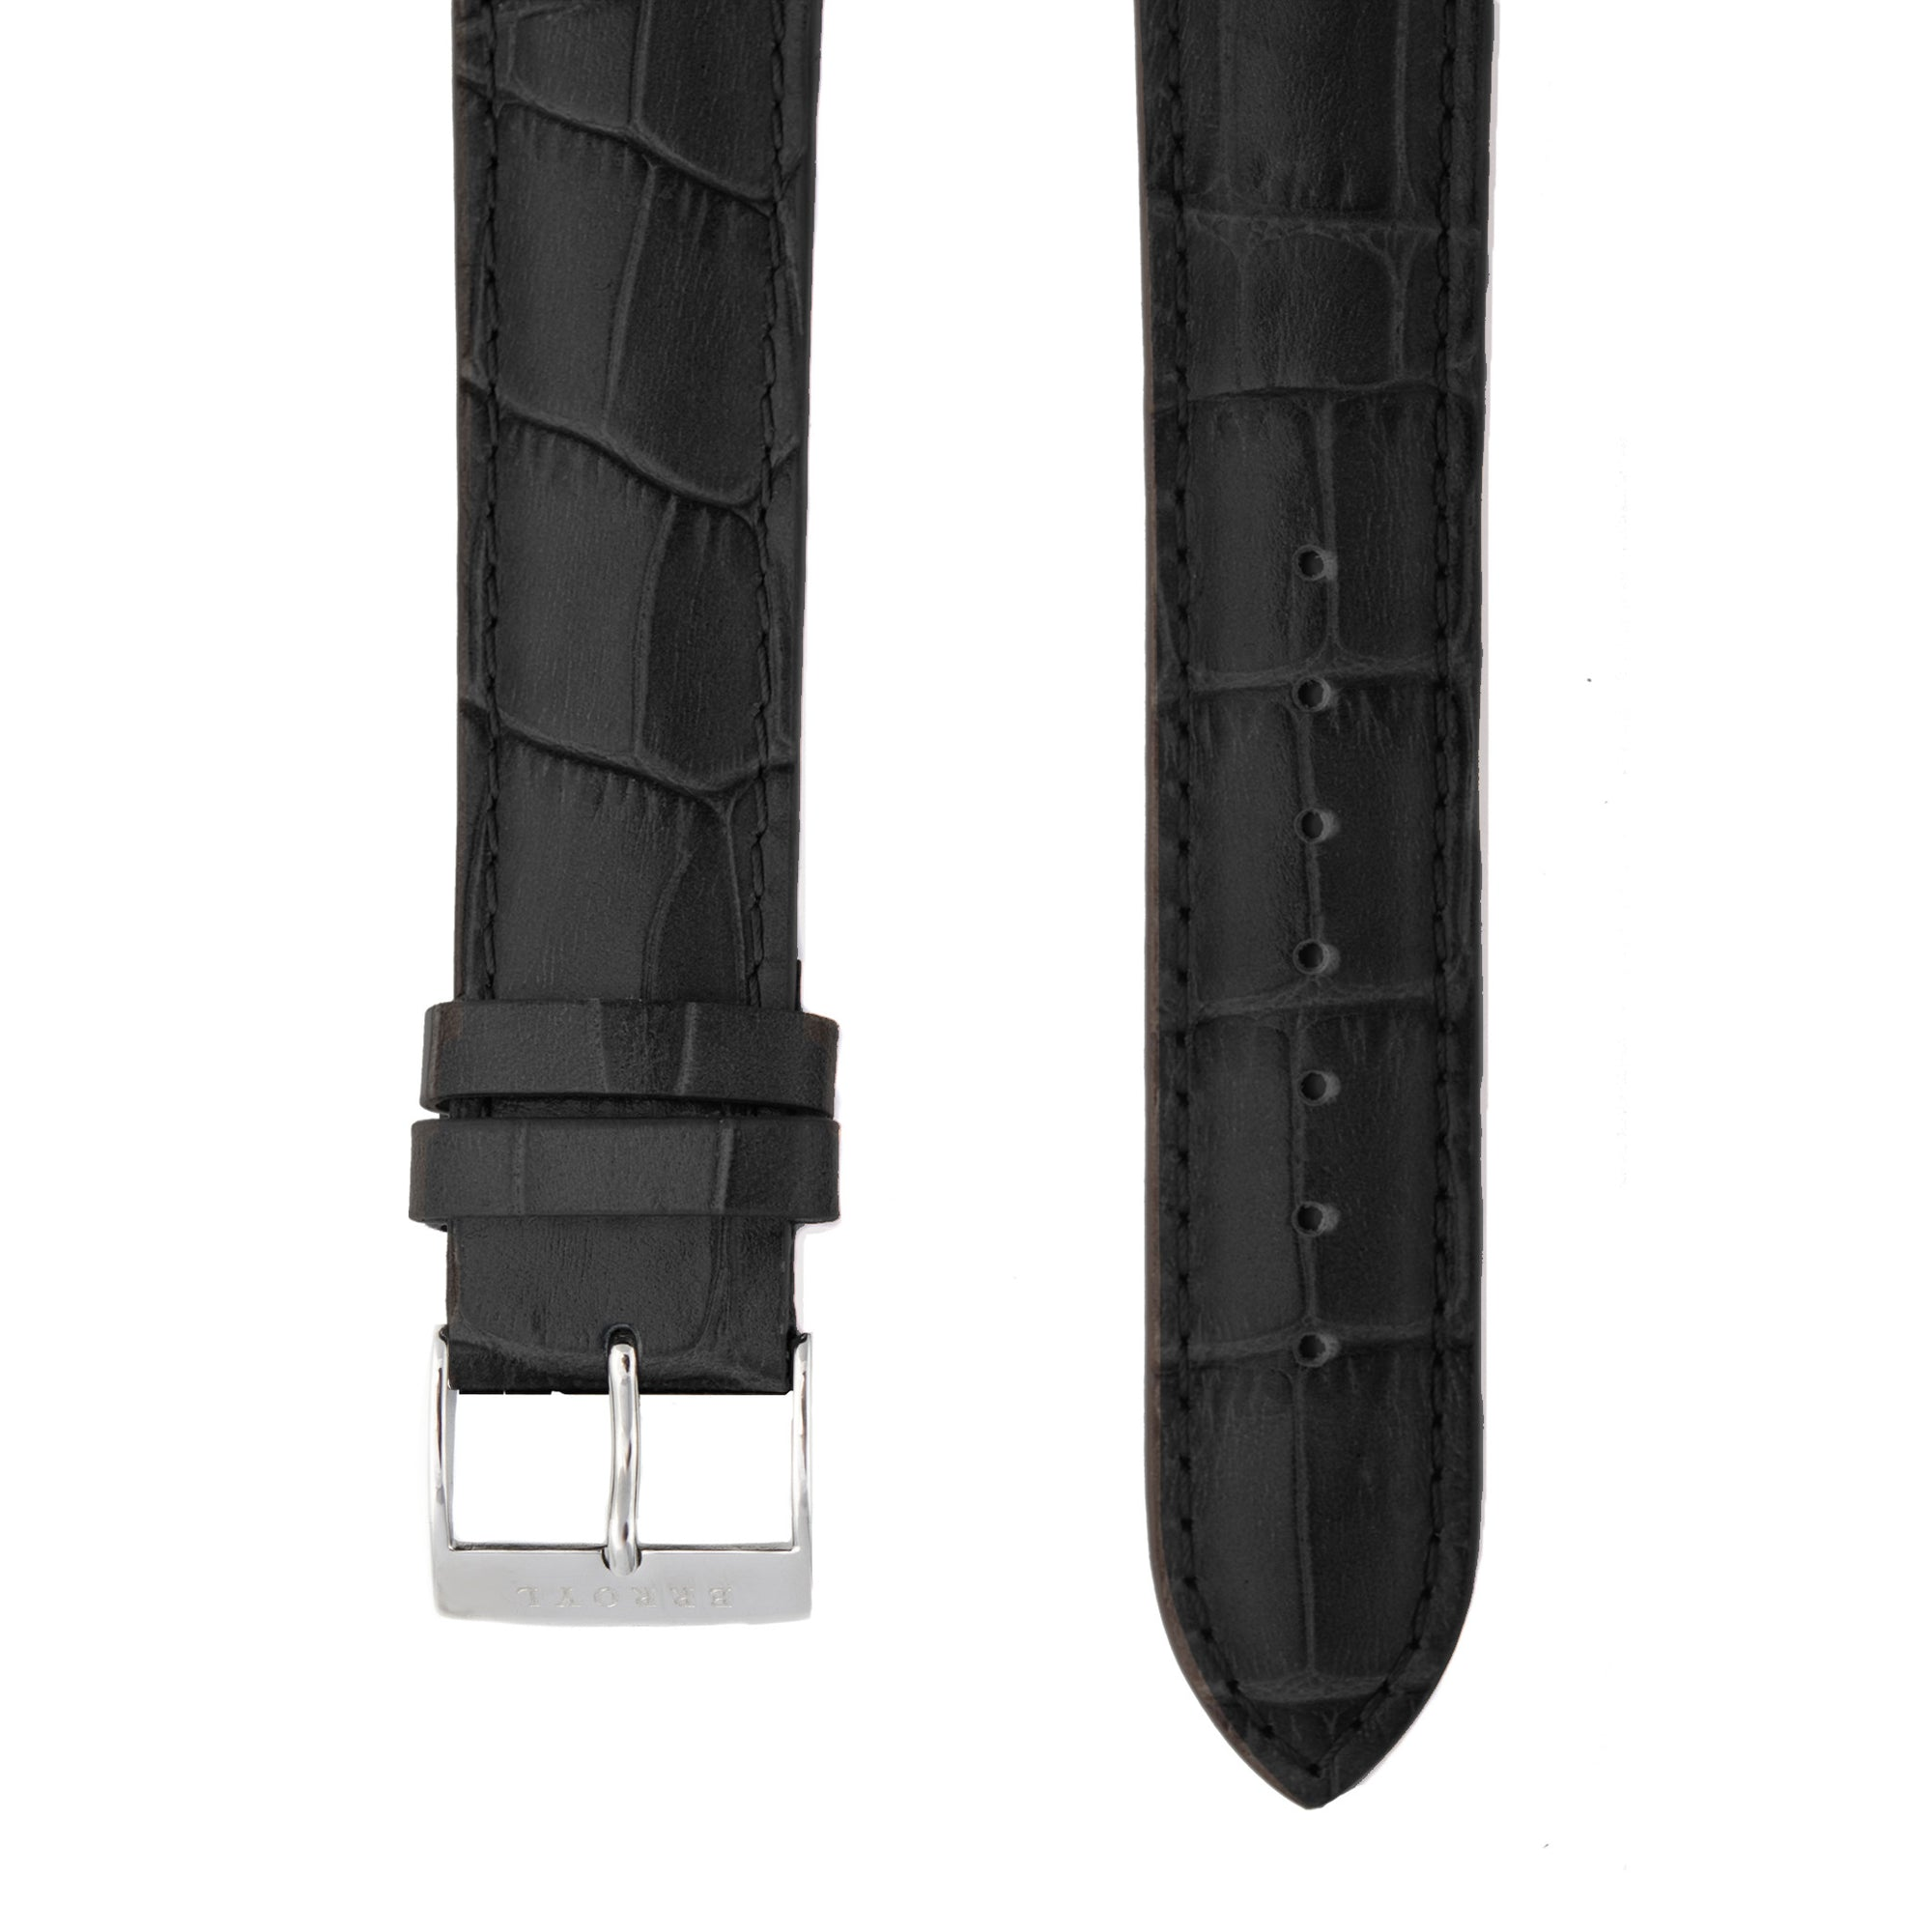 Black Alligator Grain Leather Strap with Stainless Steel Pin Buckle